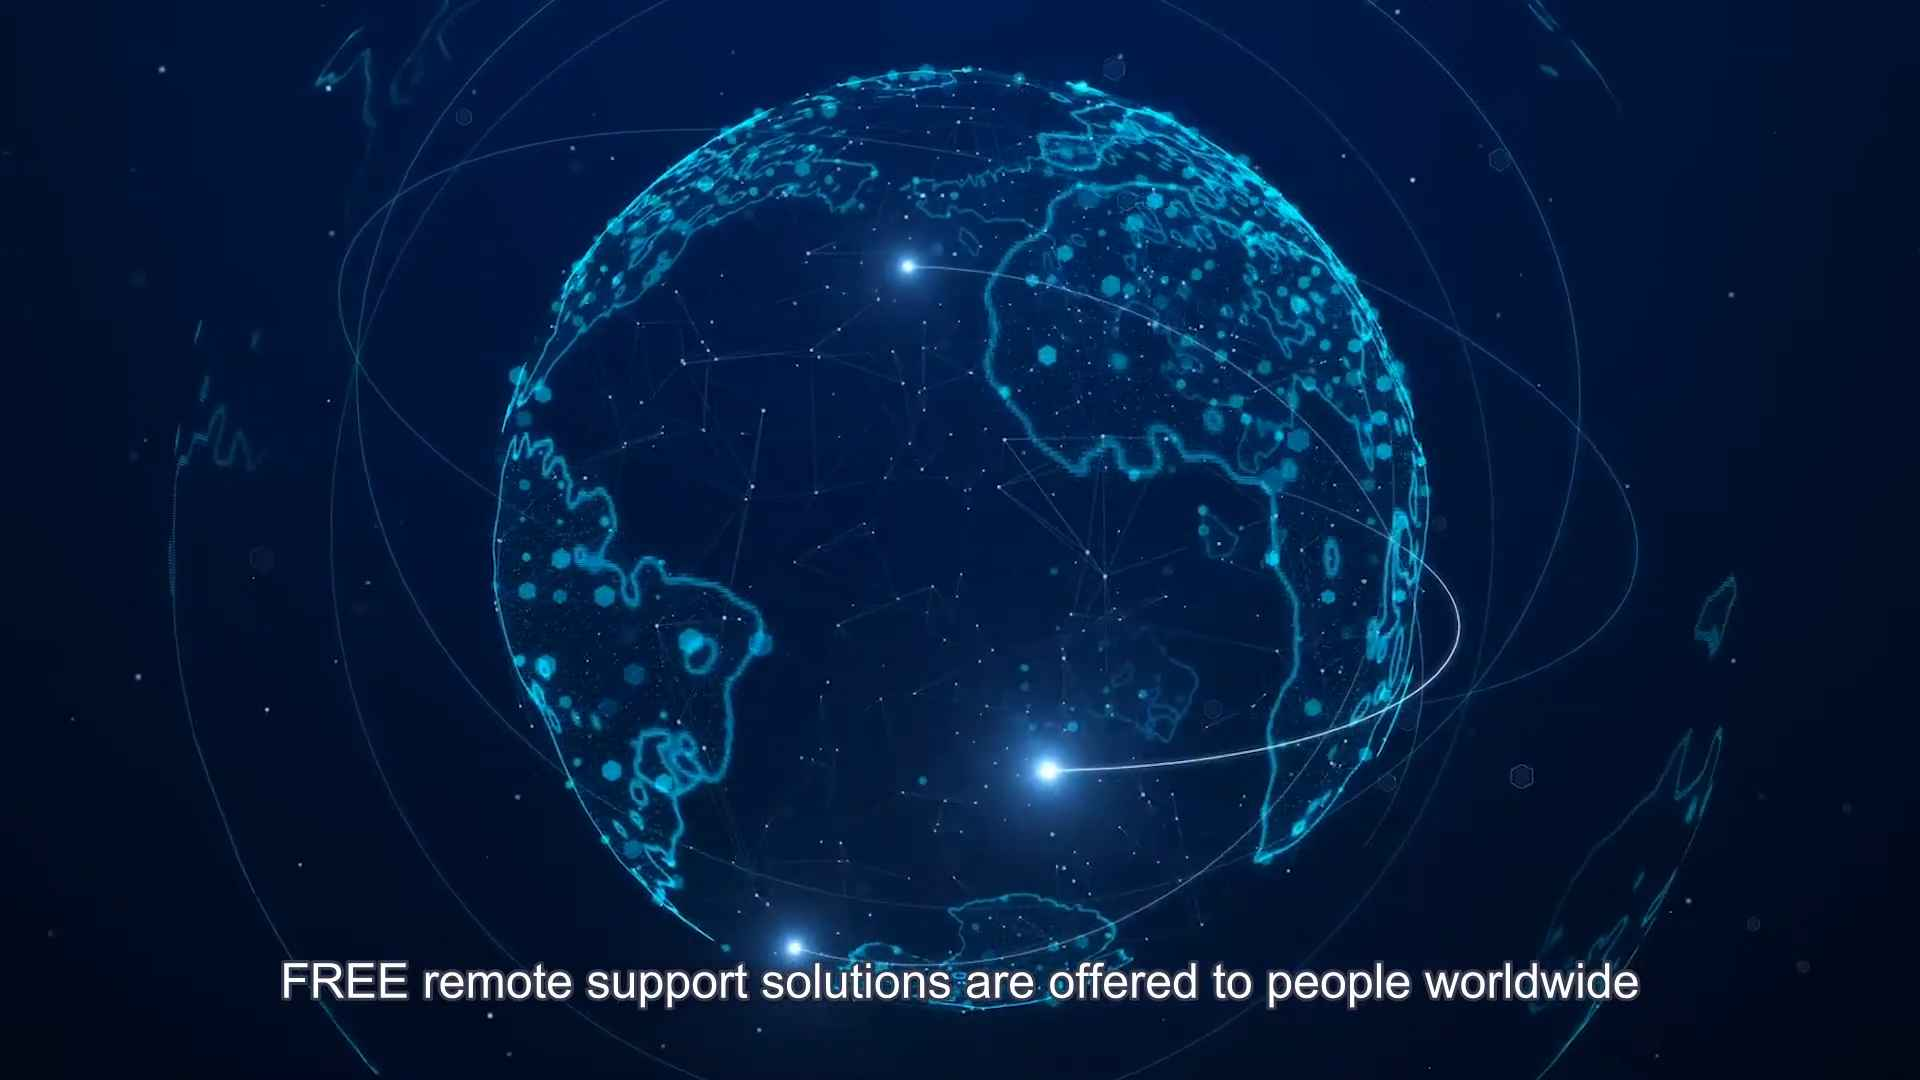 AweSun Offers Free Remote Support Solutions Worldwide